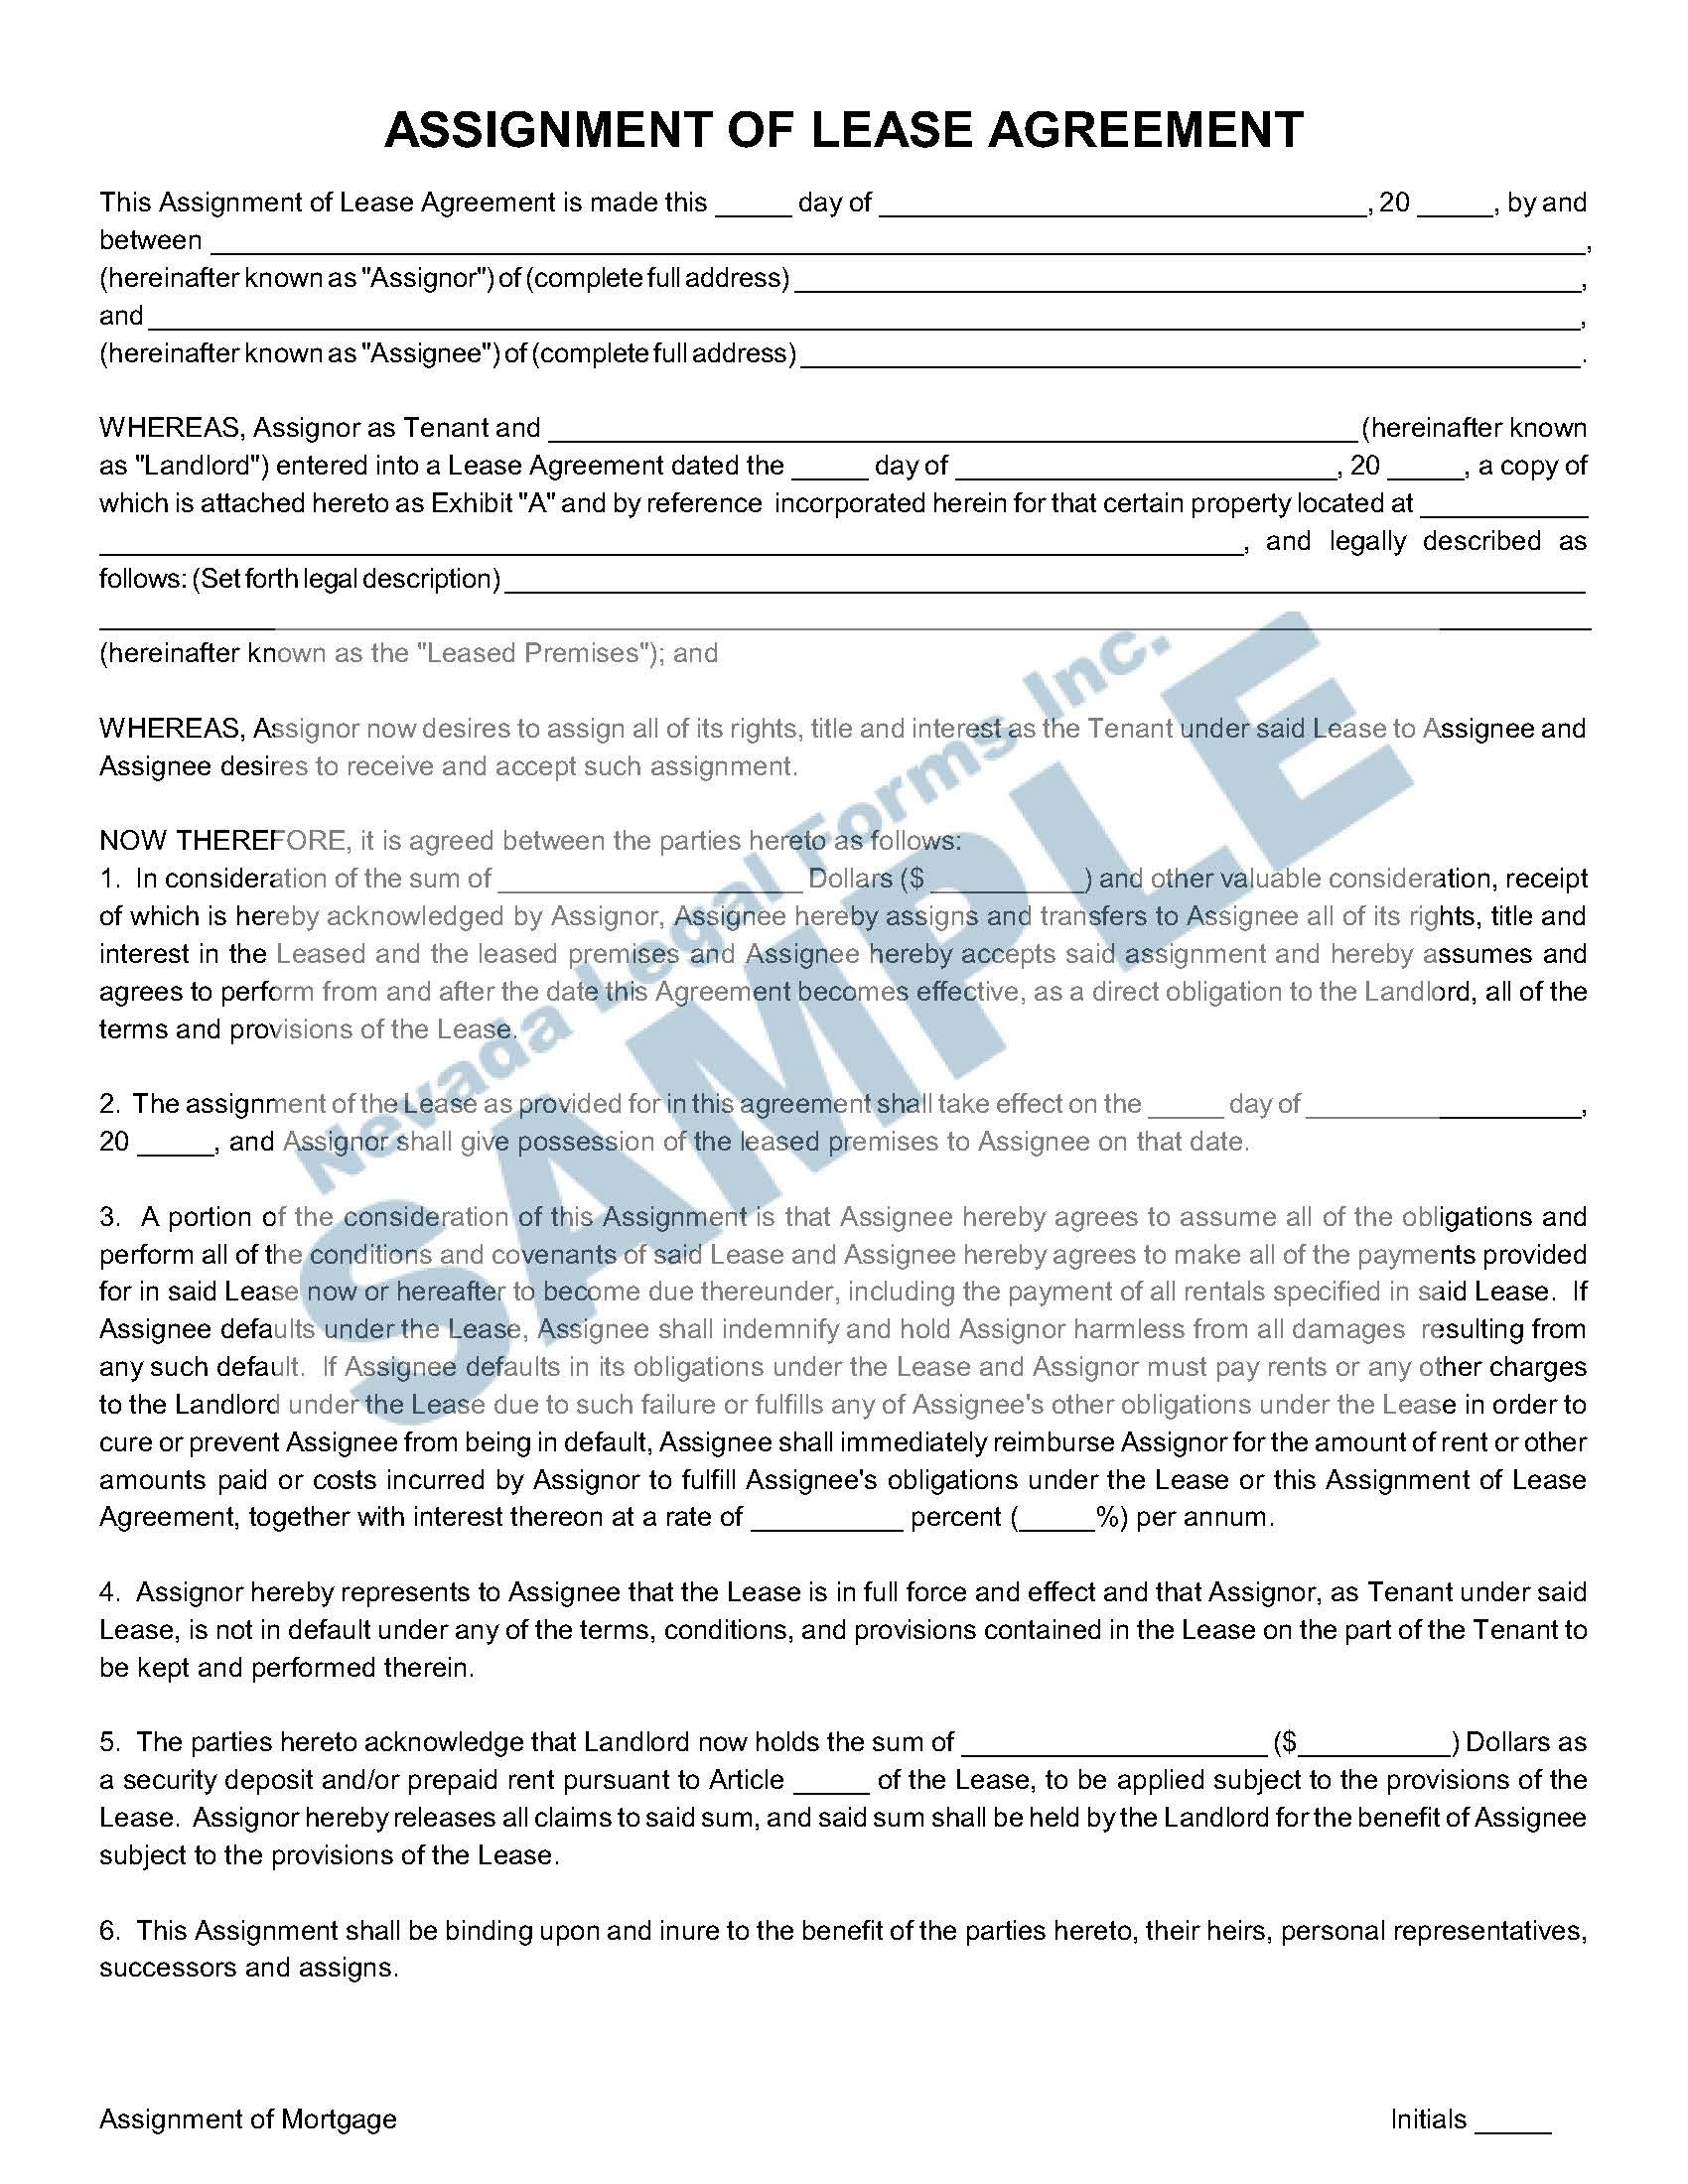 Assignment Of Lease Agreement  Nevada Legal Forms  Services Intended For Claim Assignment Agreement Template